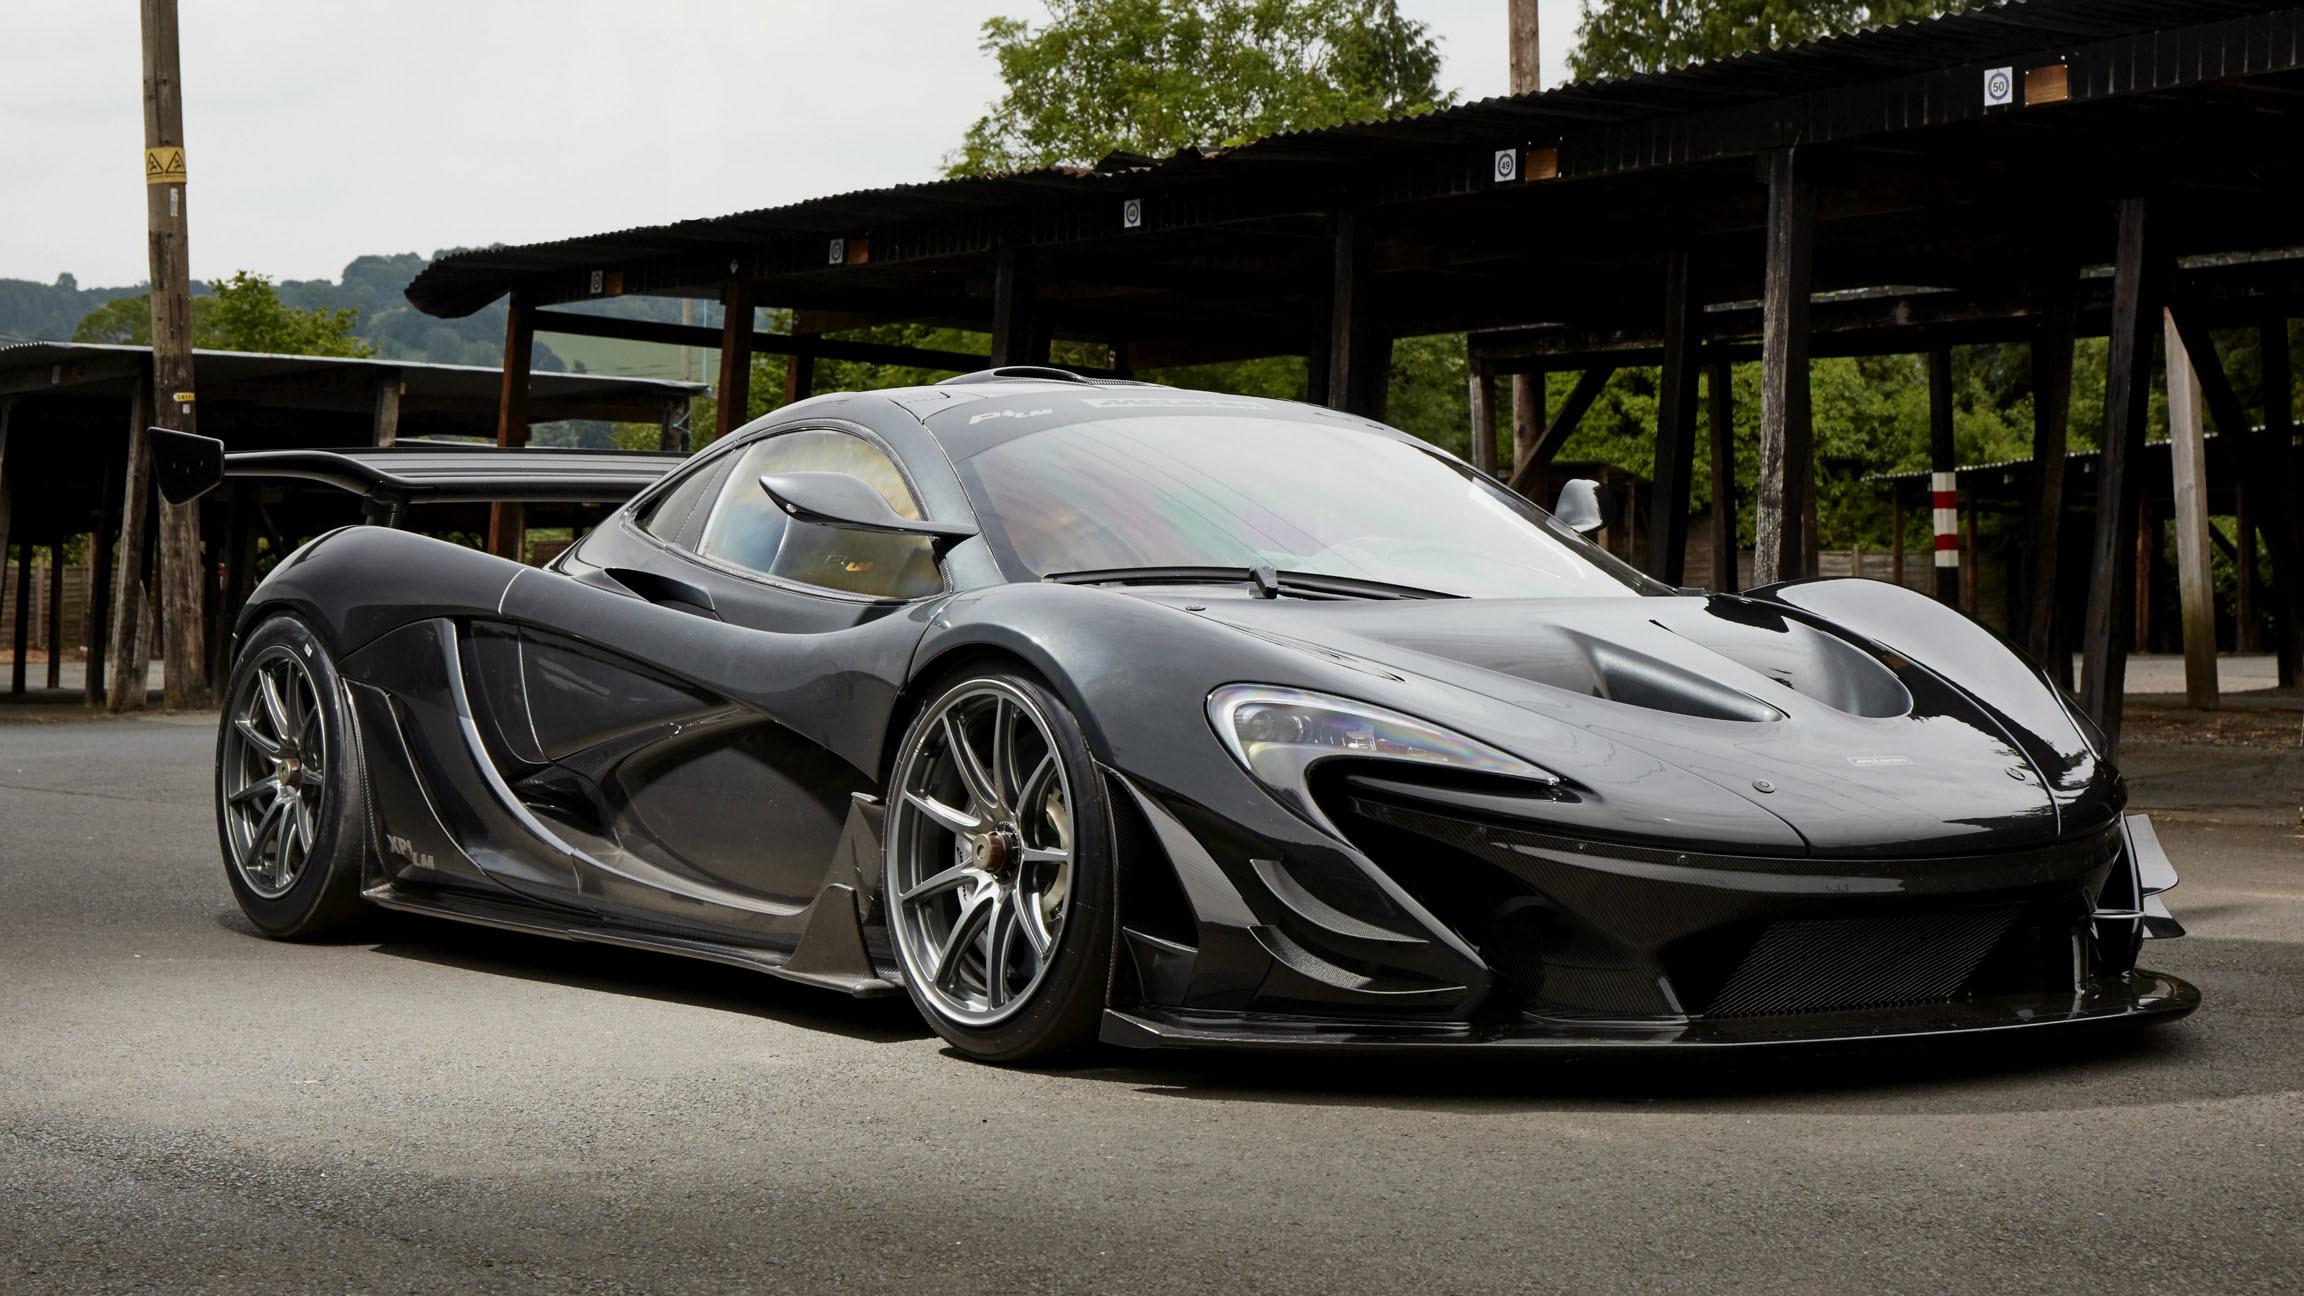 2017 mclaren p1 lm top speed. Black Bedroom Furniture Sets. Home Design Ideas